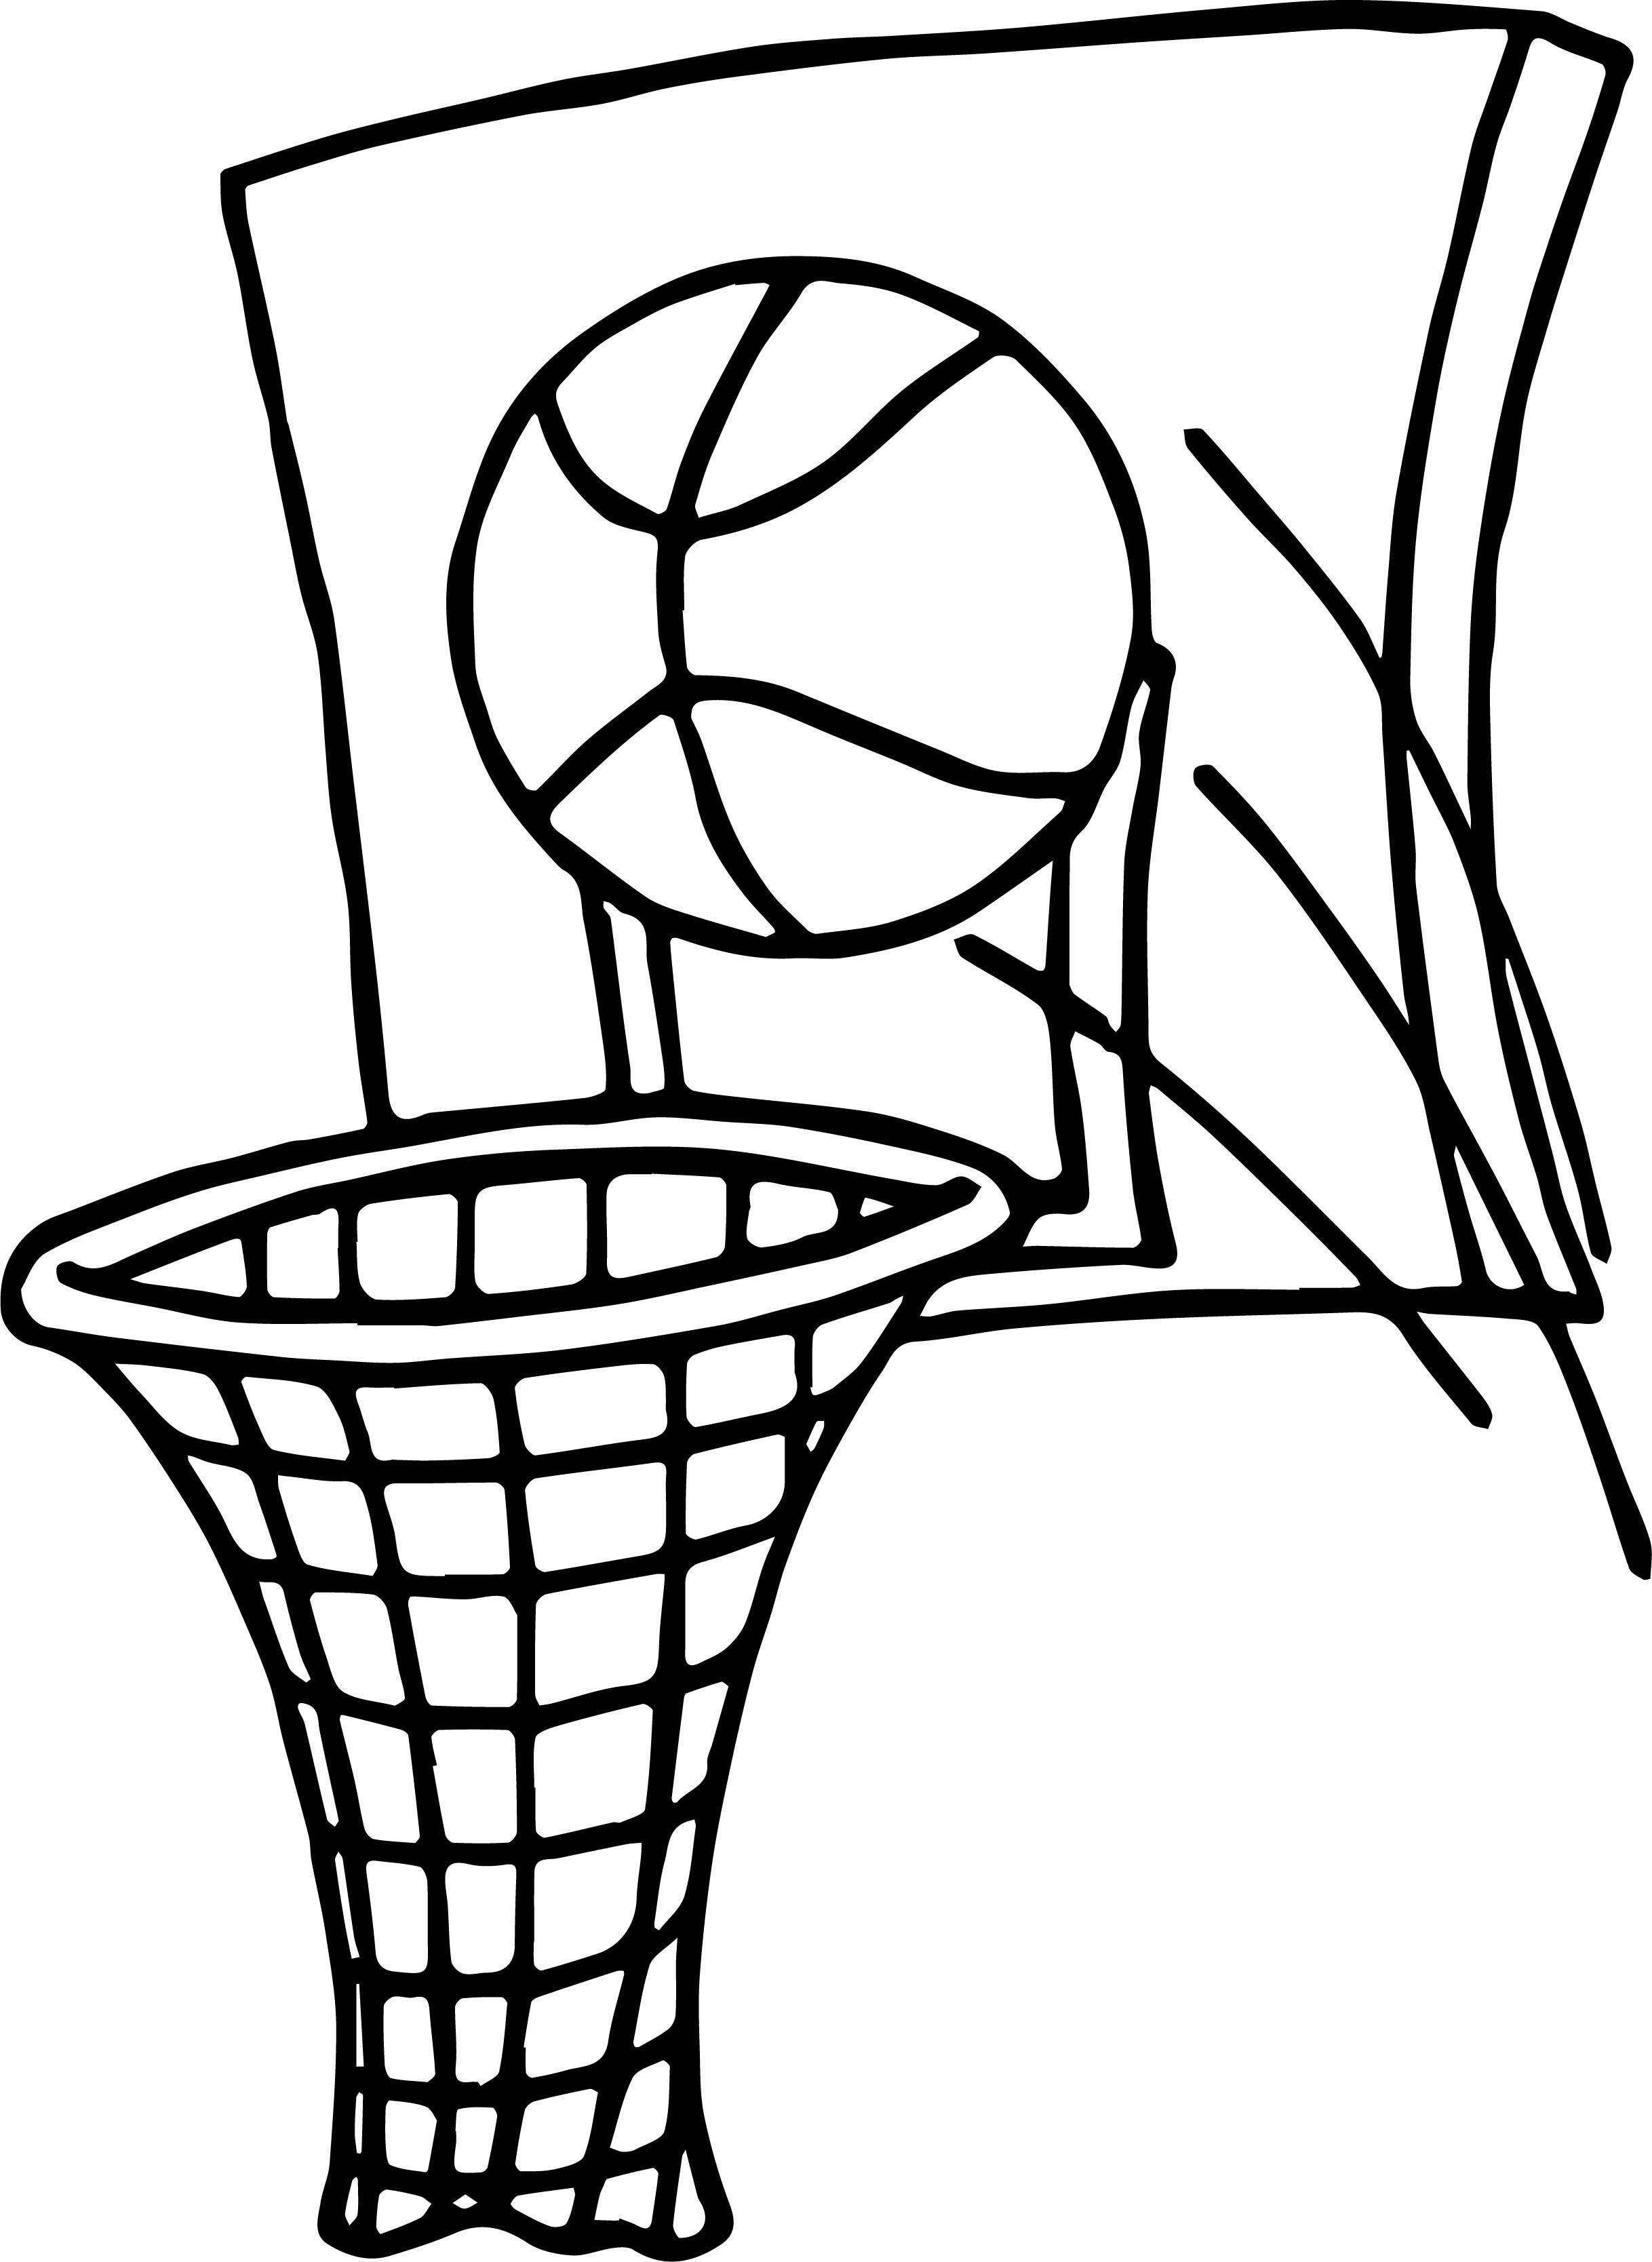 2436x3335 Basketball Goal Coloring Sheet Coloring Sheets